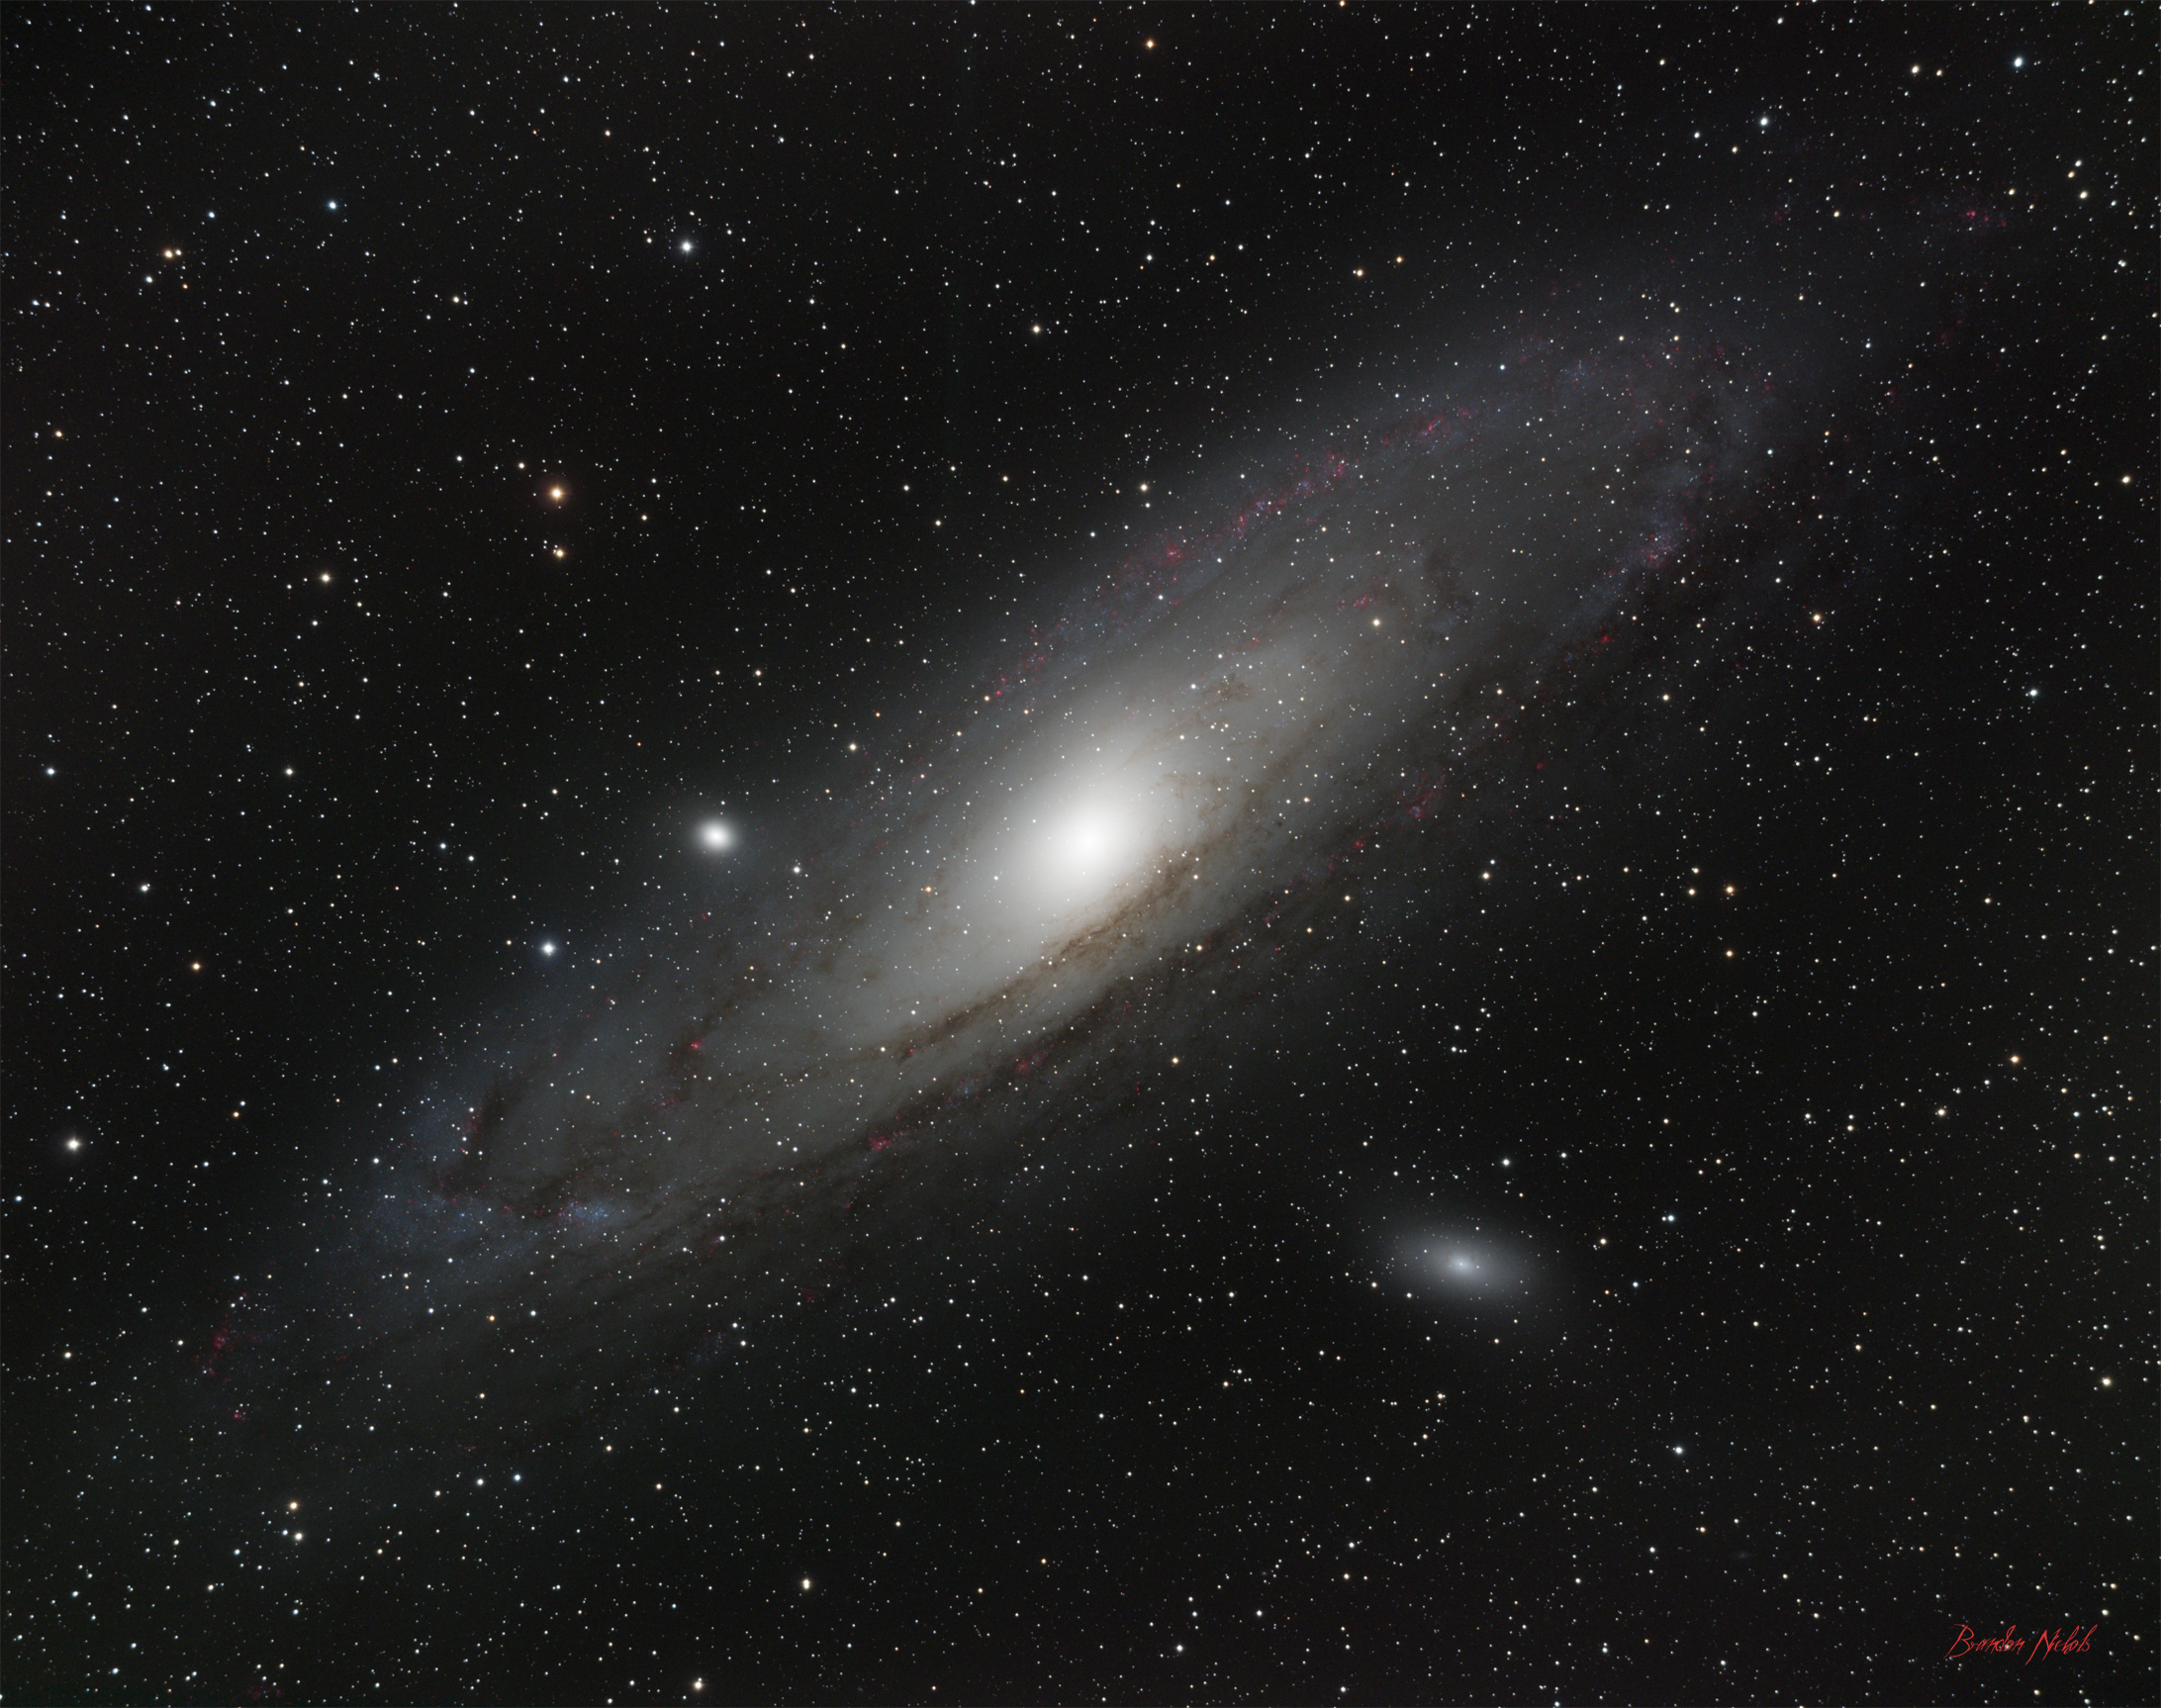 Andromeda Galaxy - Added Ha - Very Little Processing